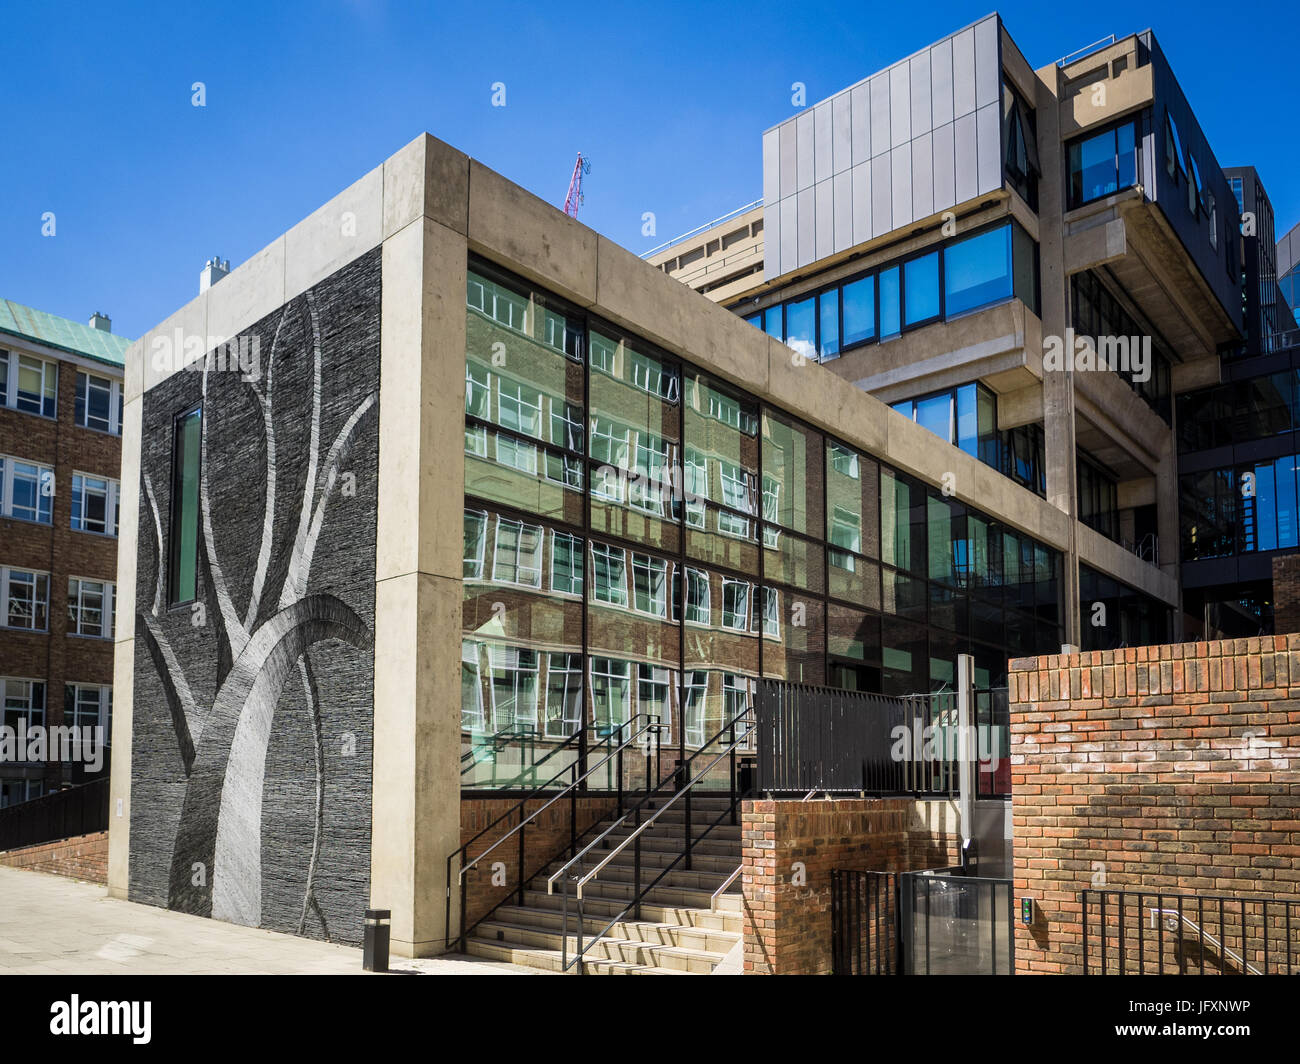 Cambridge Museum of Zoology, the David Attenborough building redevelopment in central Cambridge, UK - Stock Image